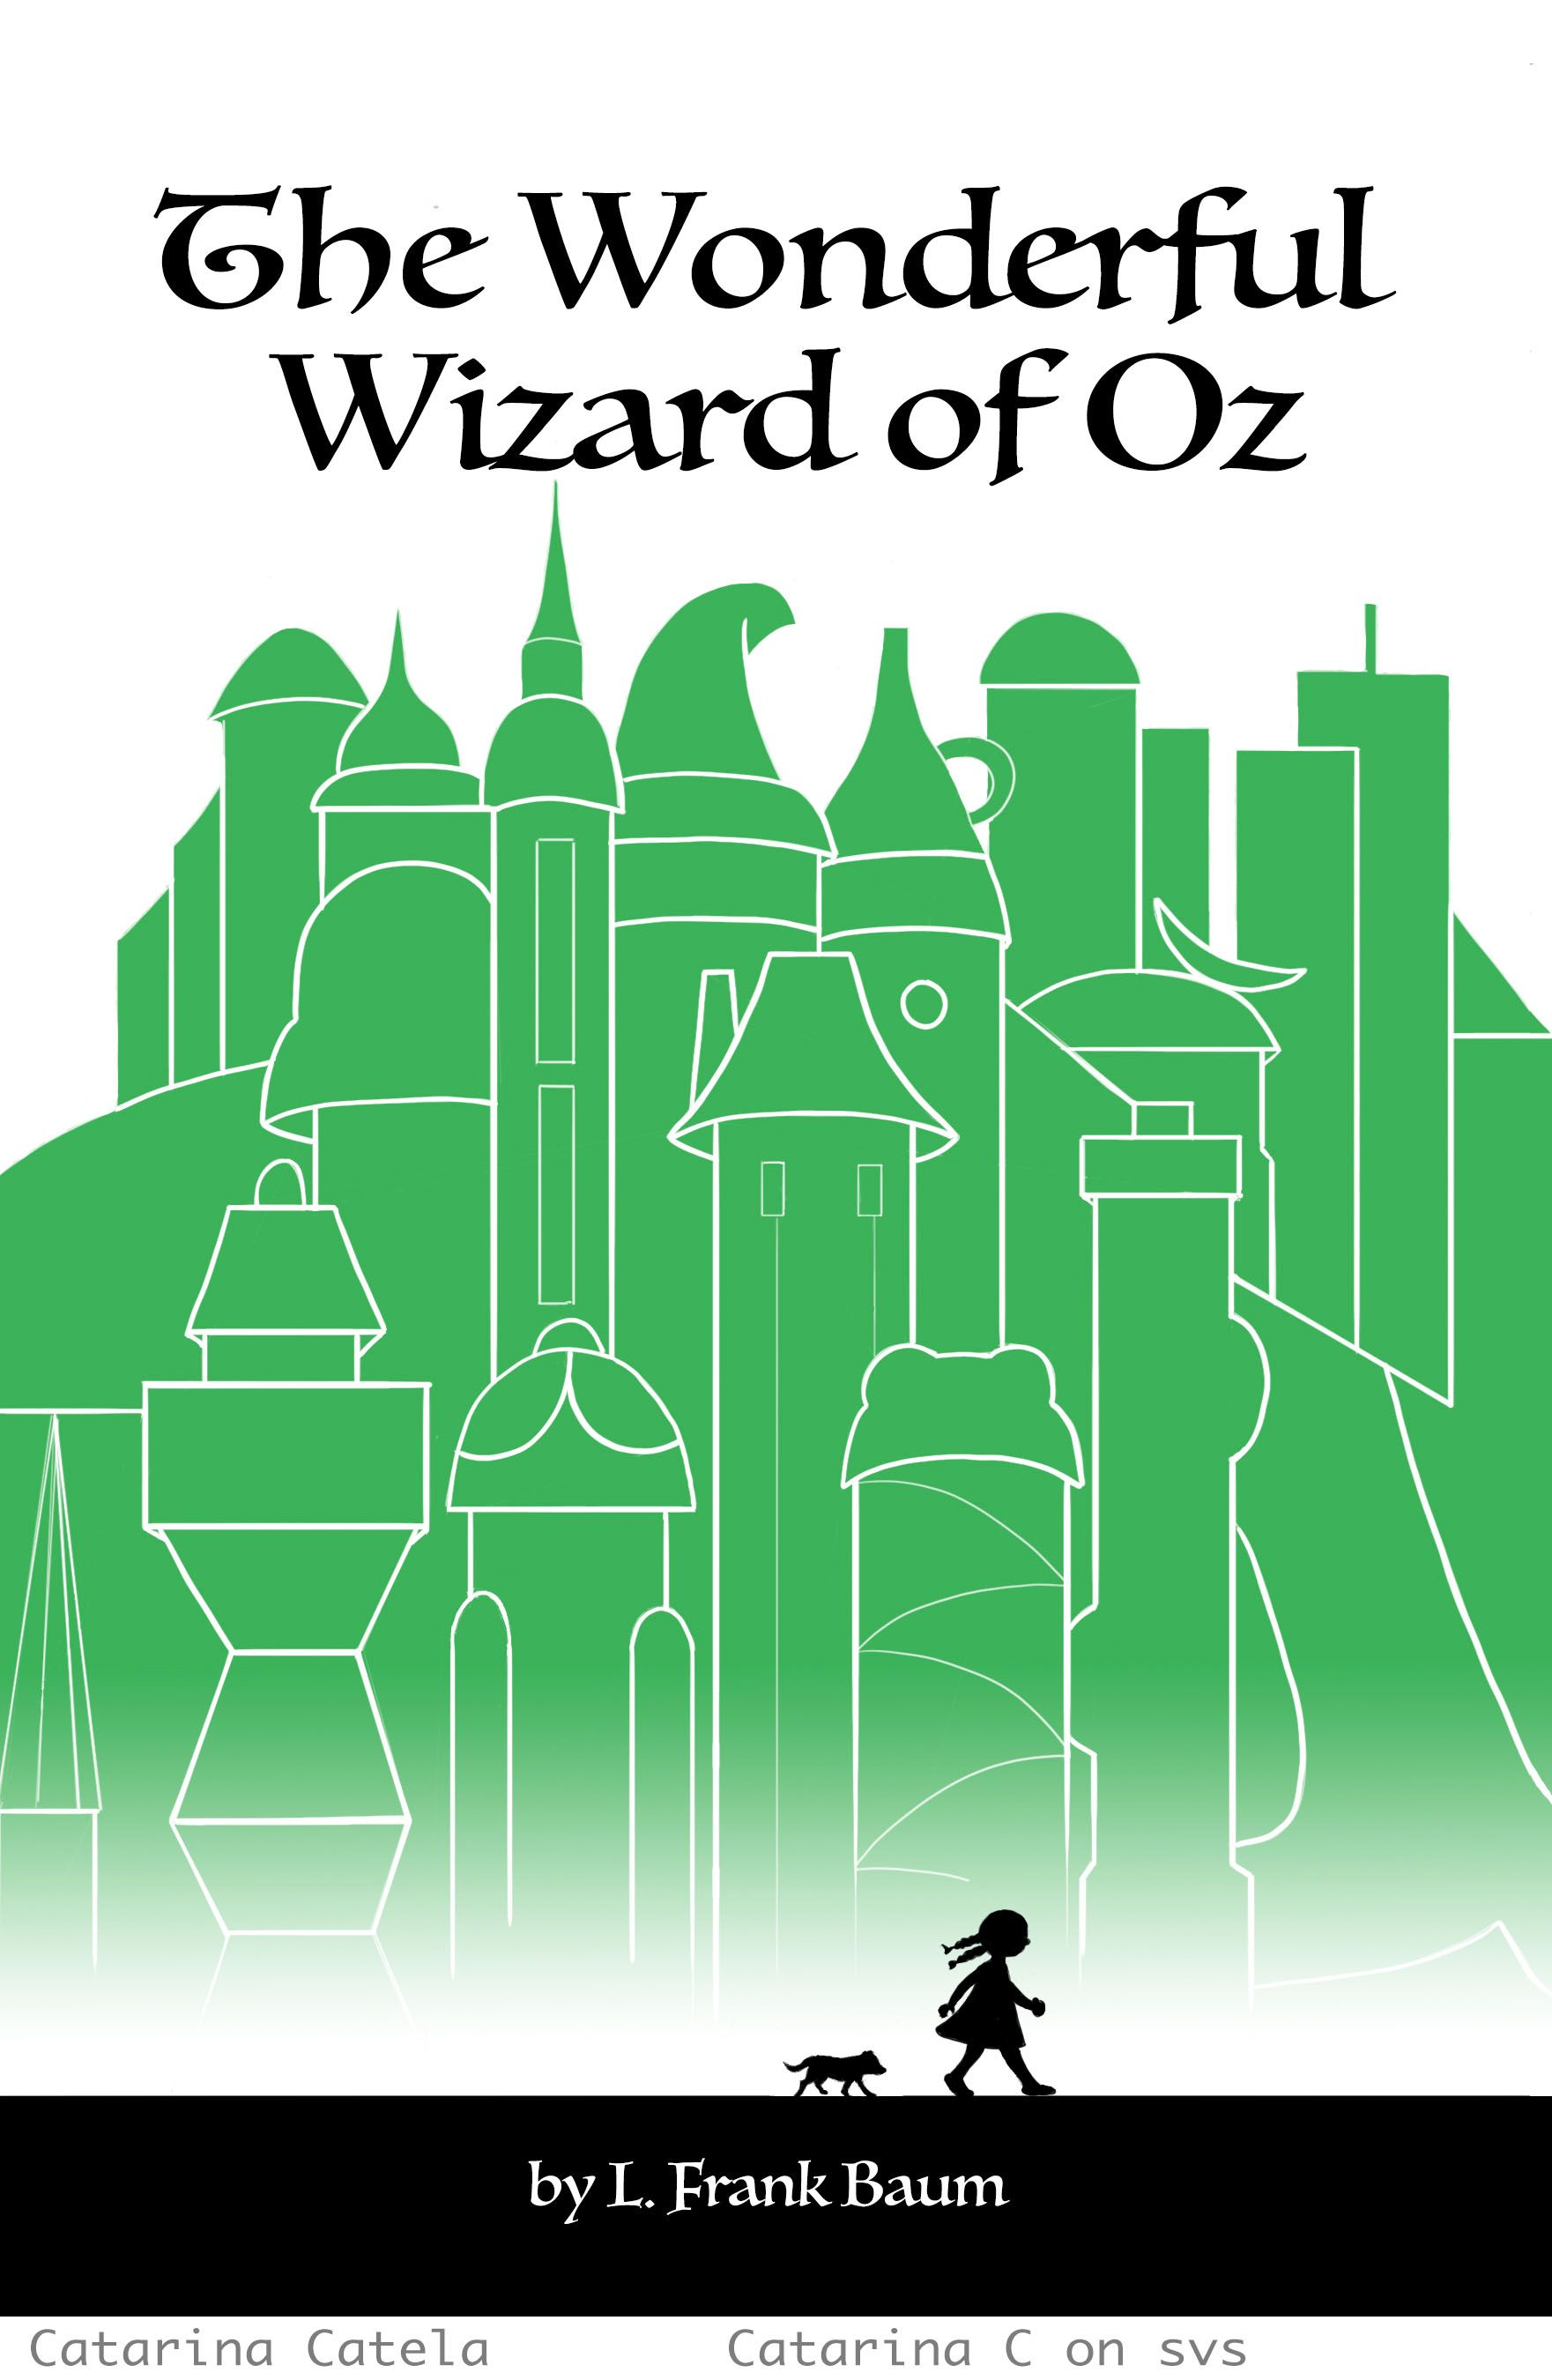 Wizard of Oz cover.jpg